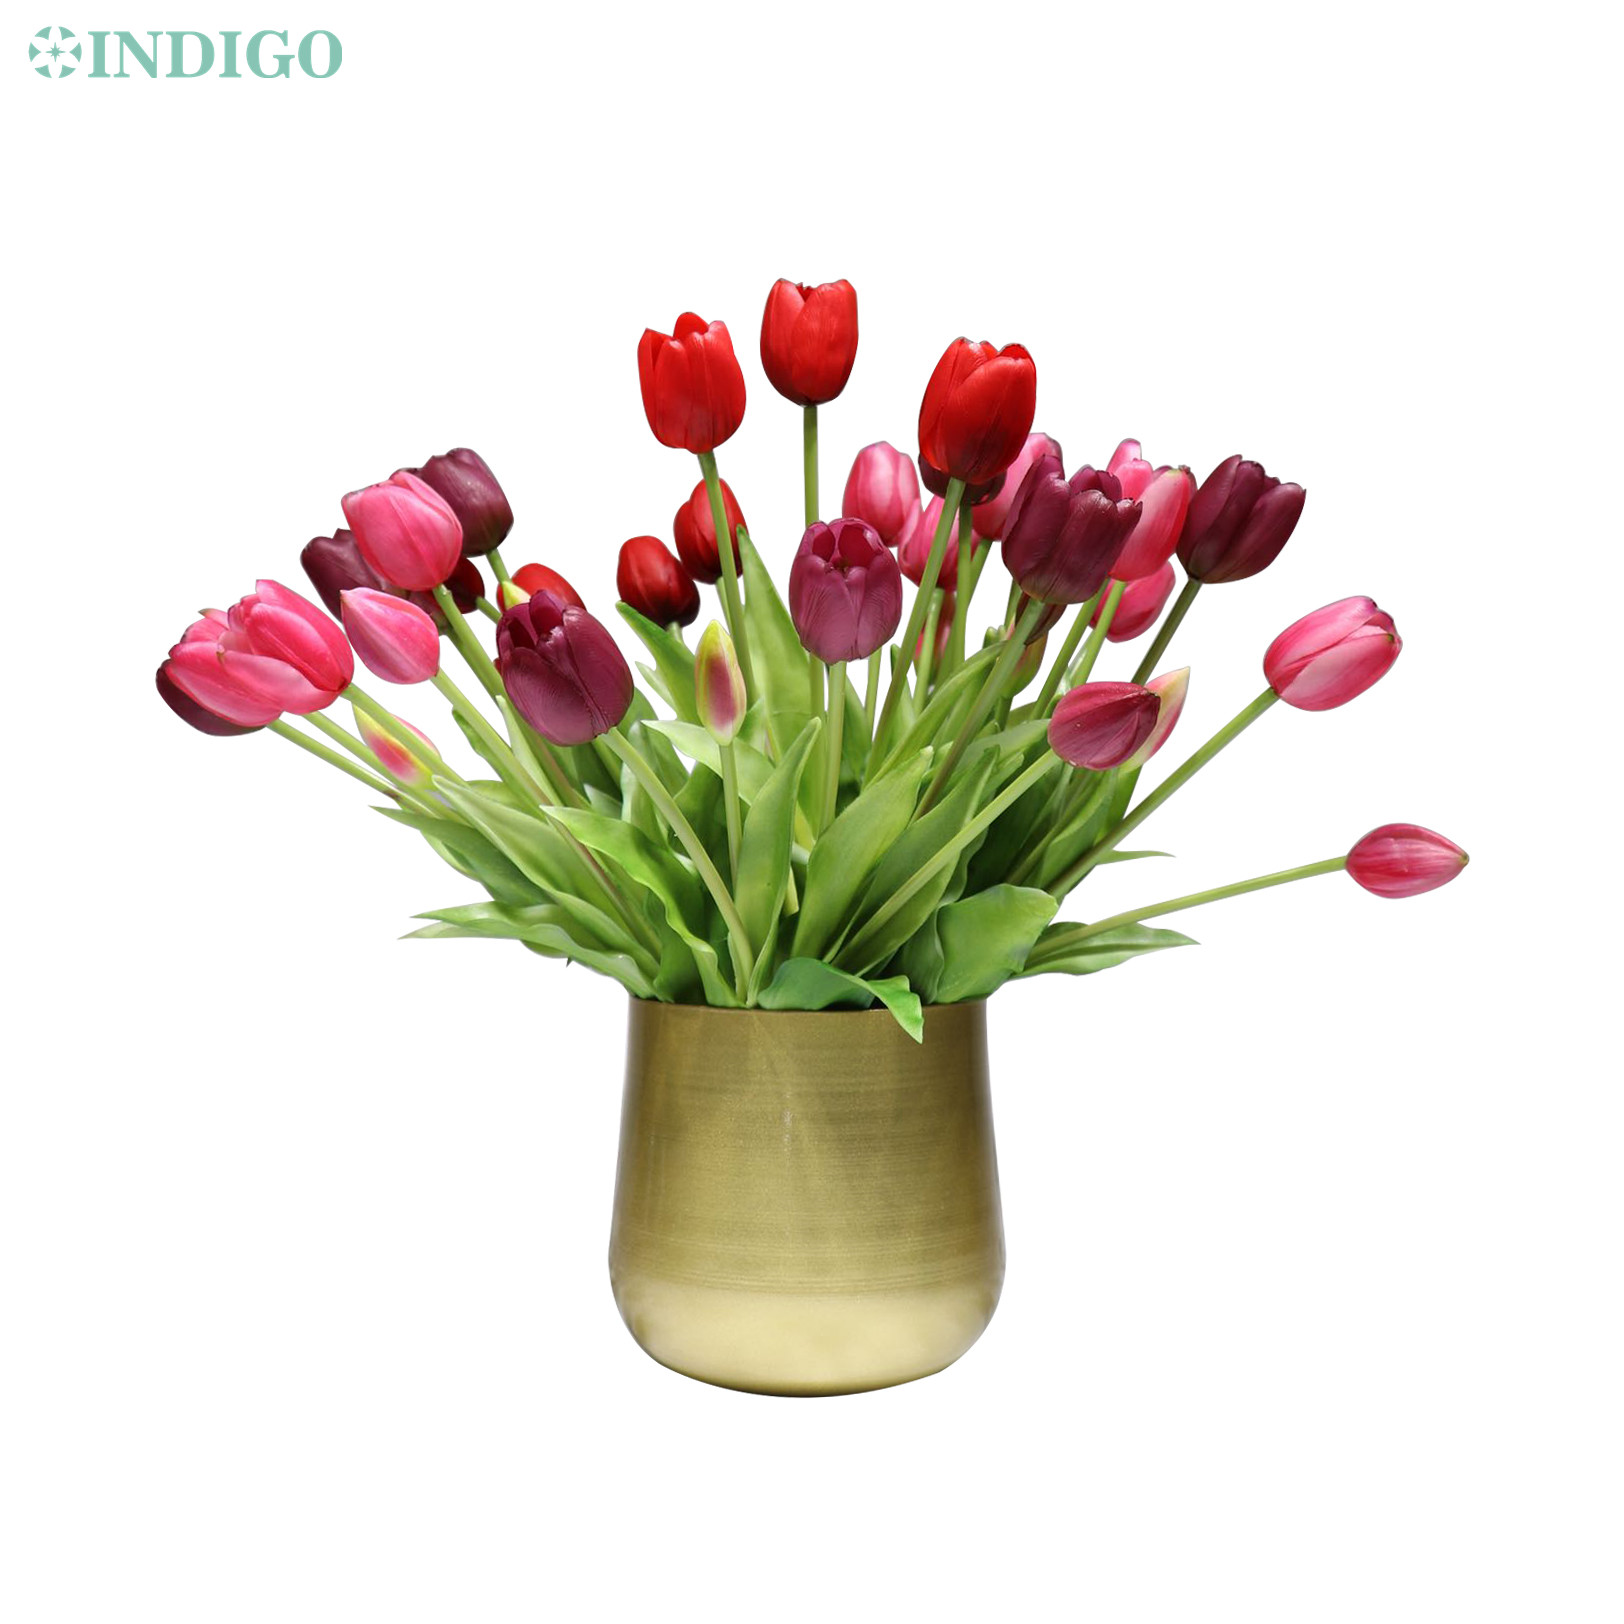 INDIGO-(3 flowers+2 bud)Bouquet Real Touch Silicone Tulip High Quality Yellow Tulip Home Artificial Flower Wedding DropShipping-1